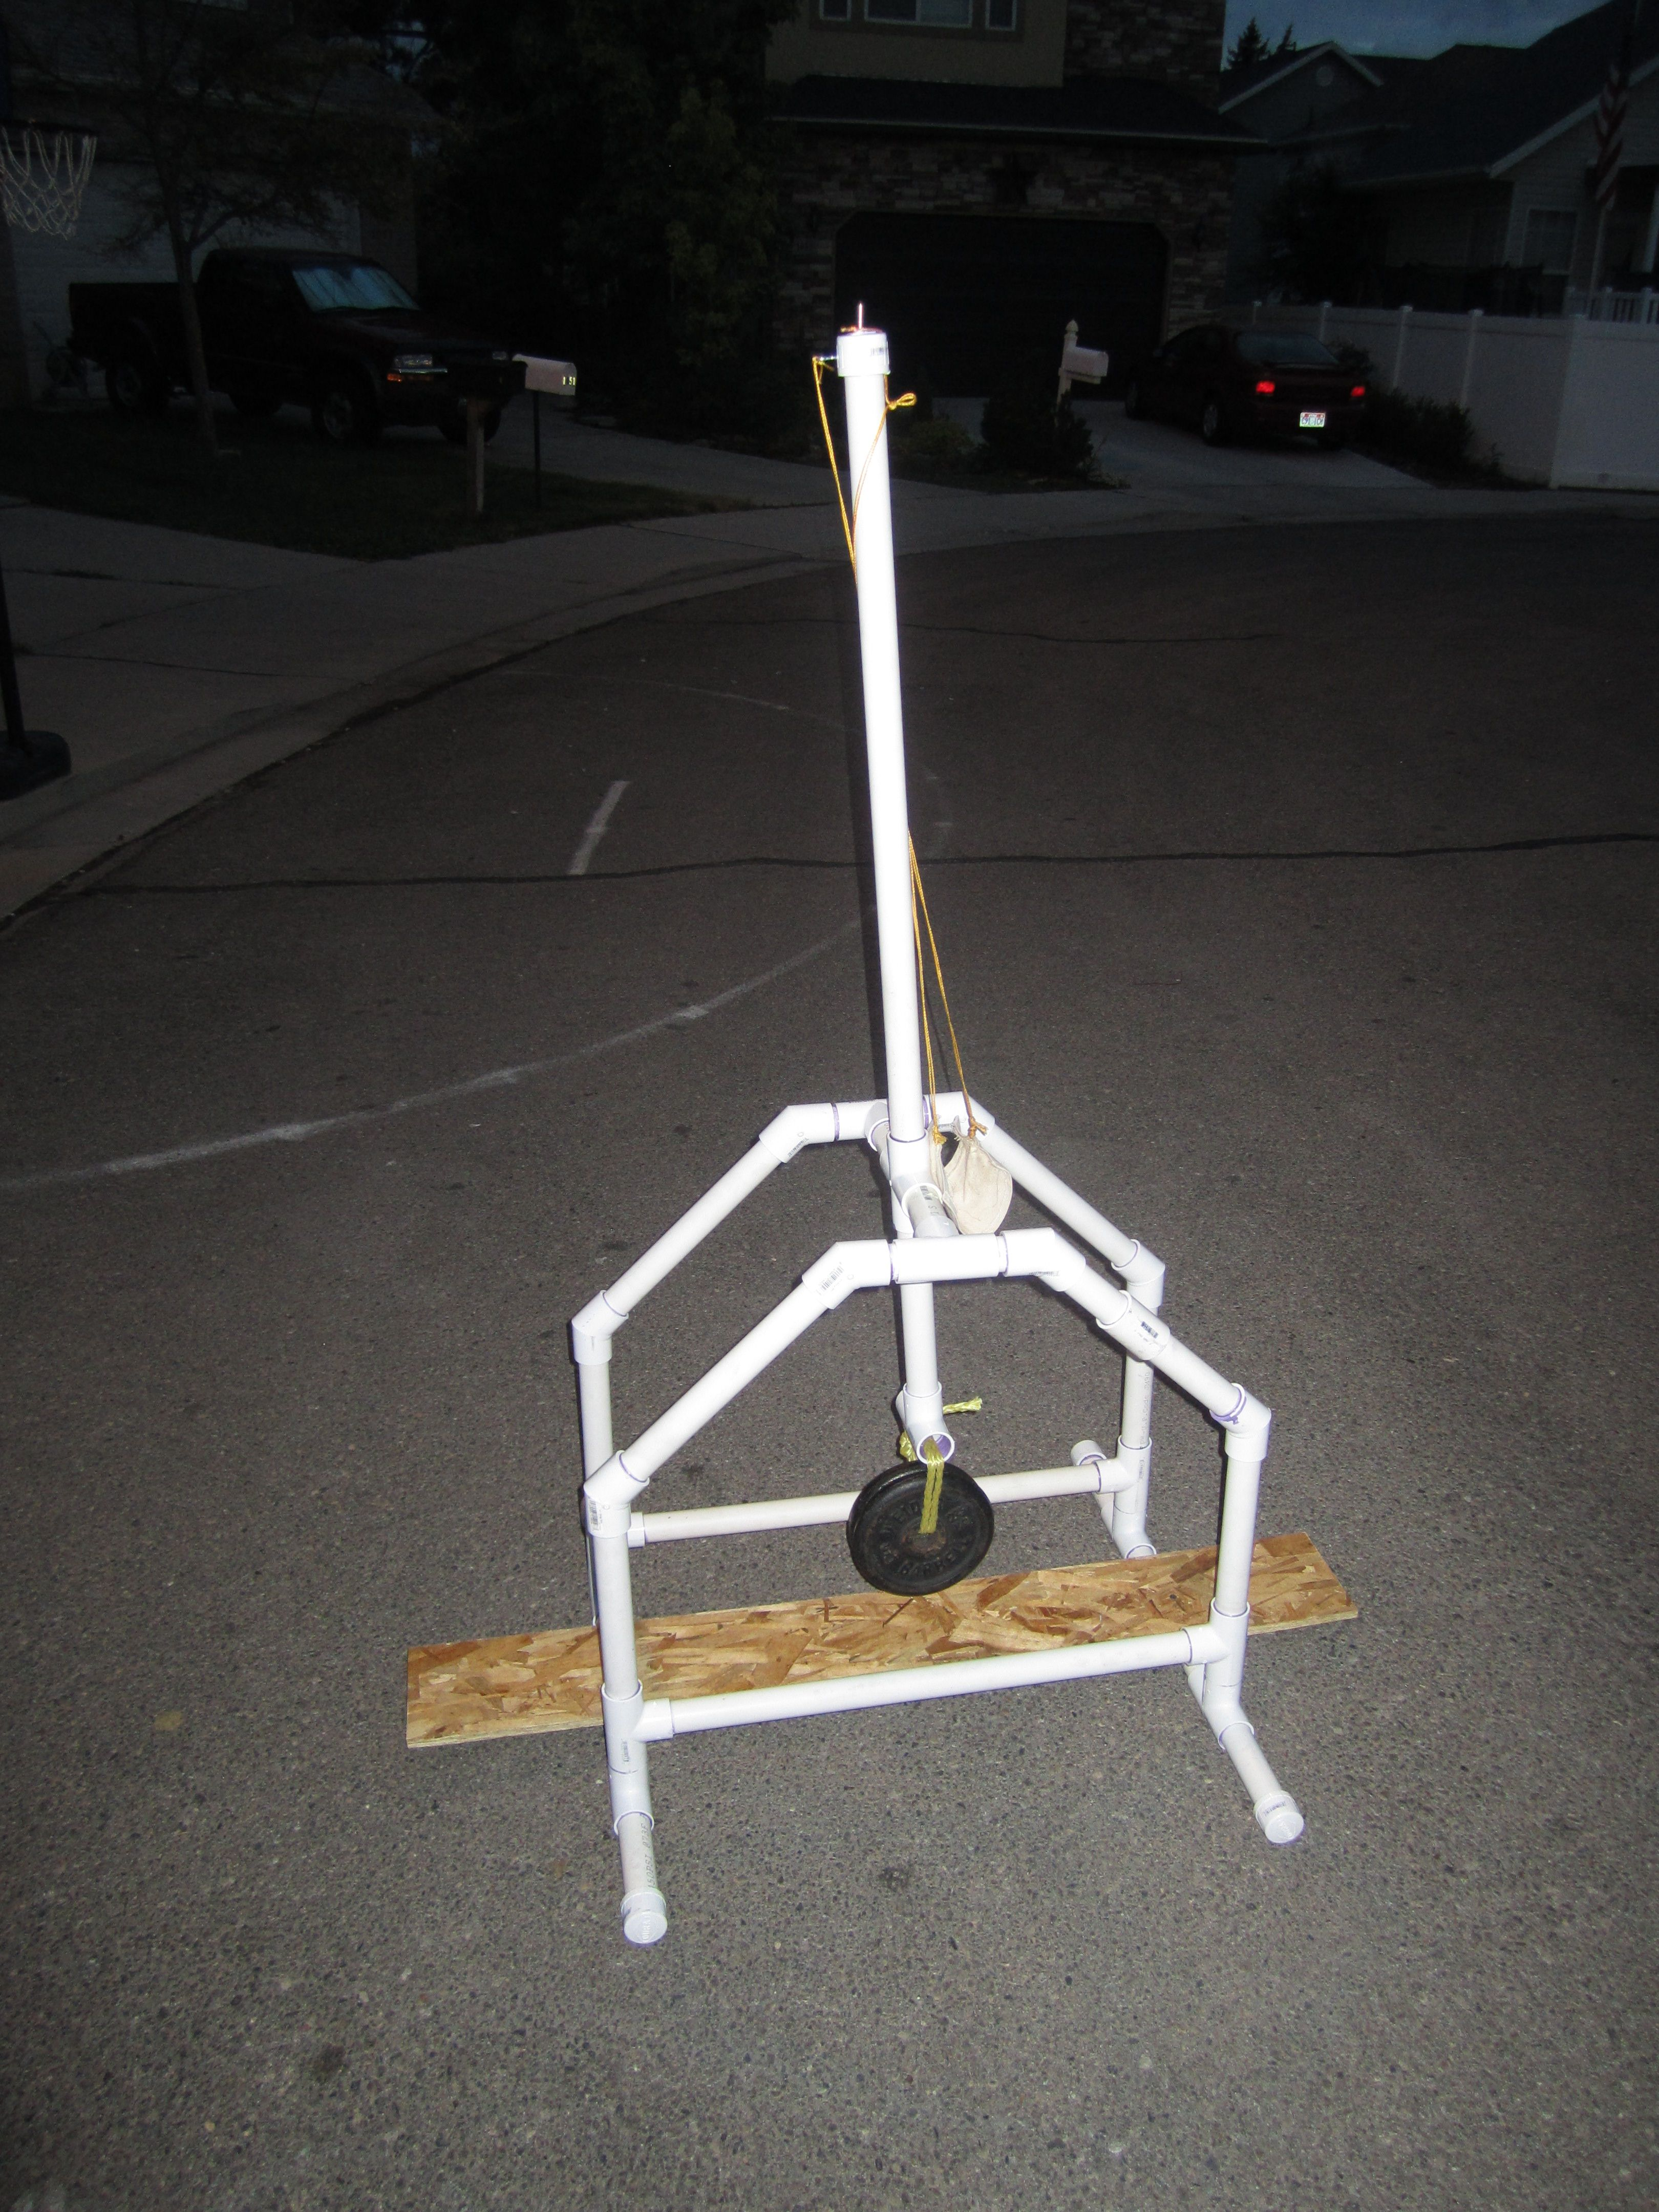 medium resolution of pvc trebuchet i built this trebuchet as a summer project the trebuchet arm length ratio is 3 1 the counterweight is 100 1